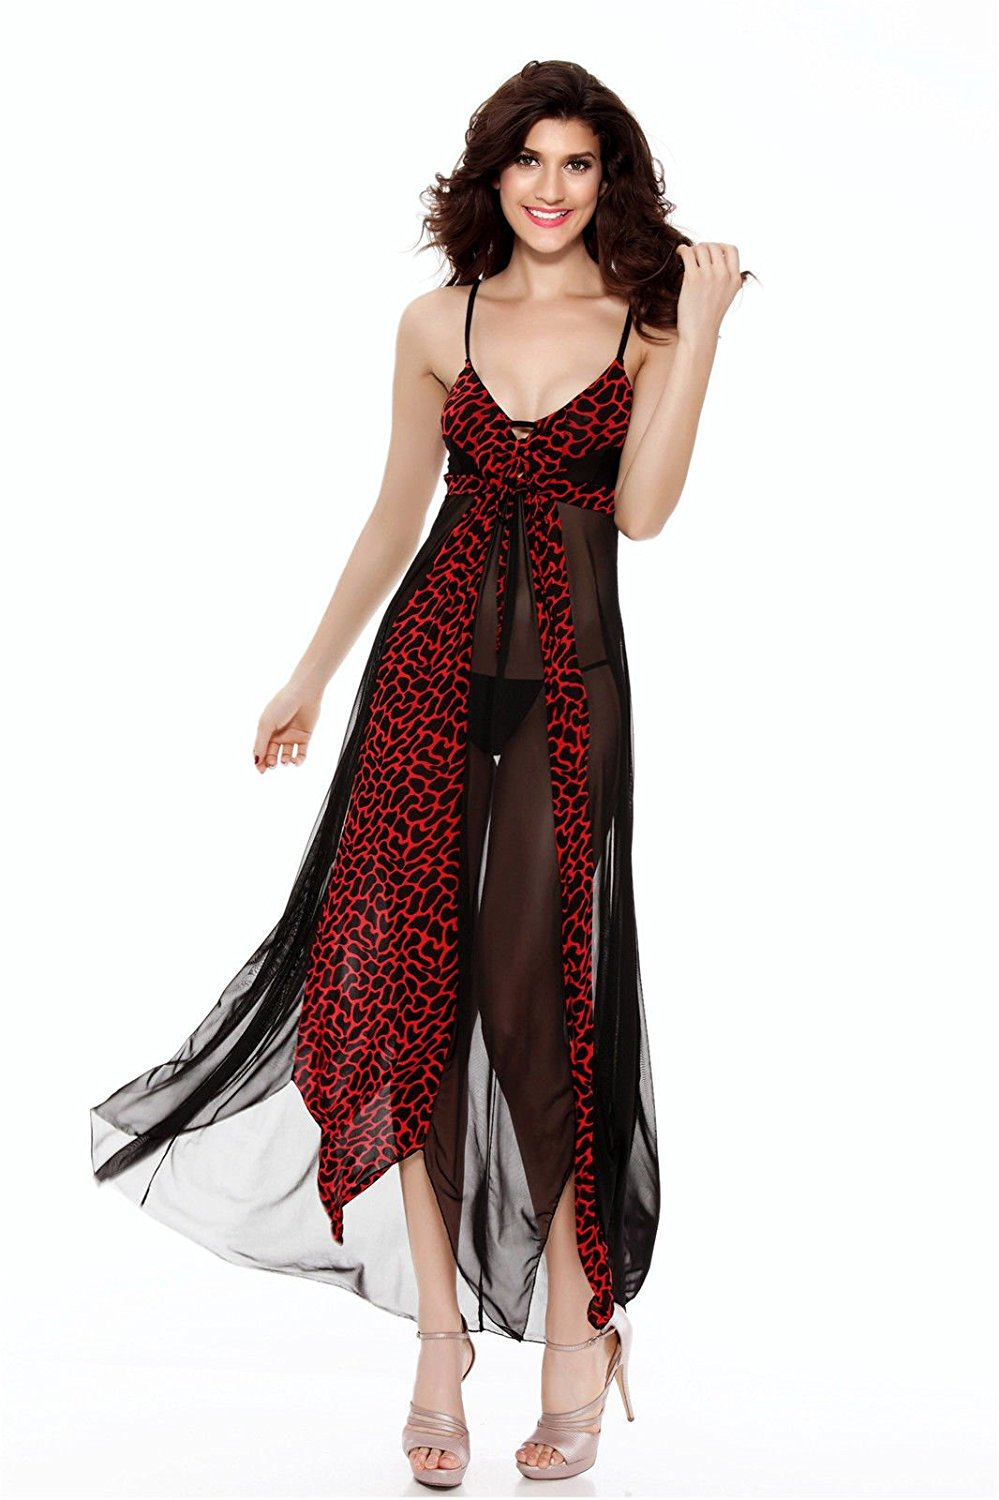 6303fdbf54 Get Quotations · Horny Time - RED HOT LONG GOWN Womens Sexy Lingerie  Leopard-grain Sleepwear Babydoll Dress